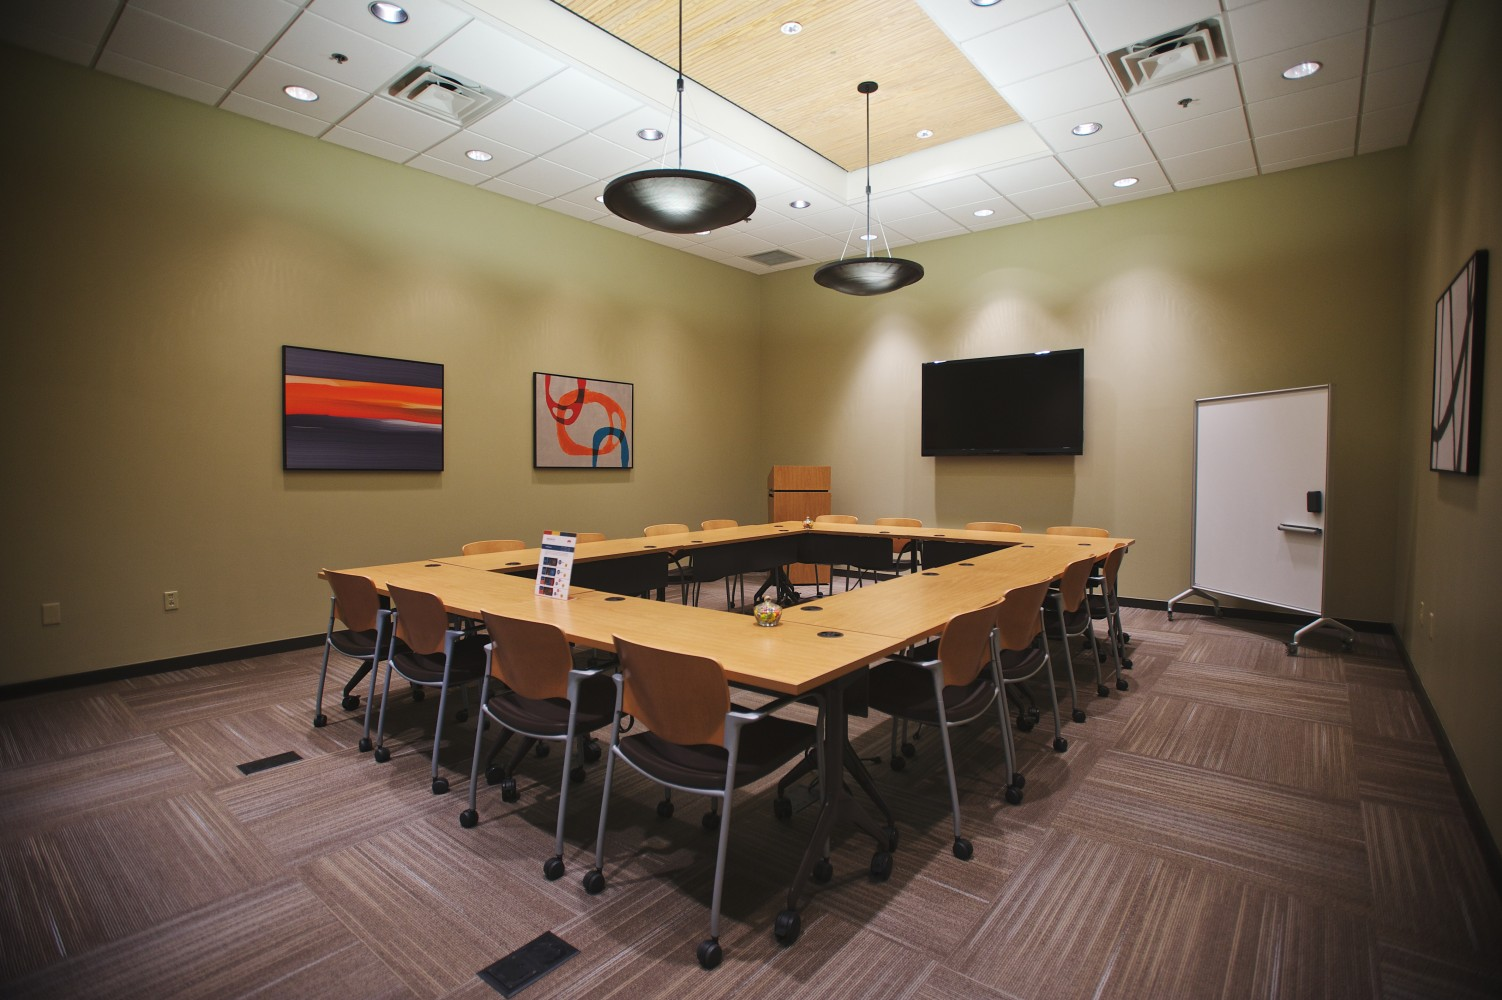 Meeting rooms for rent in Brentwood, TN, small event space and meeting space, training room rentals and corporate training rooms at Envision, call today!